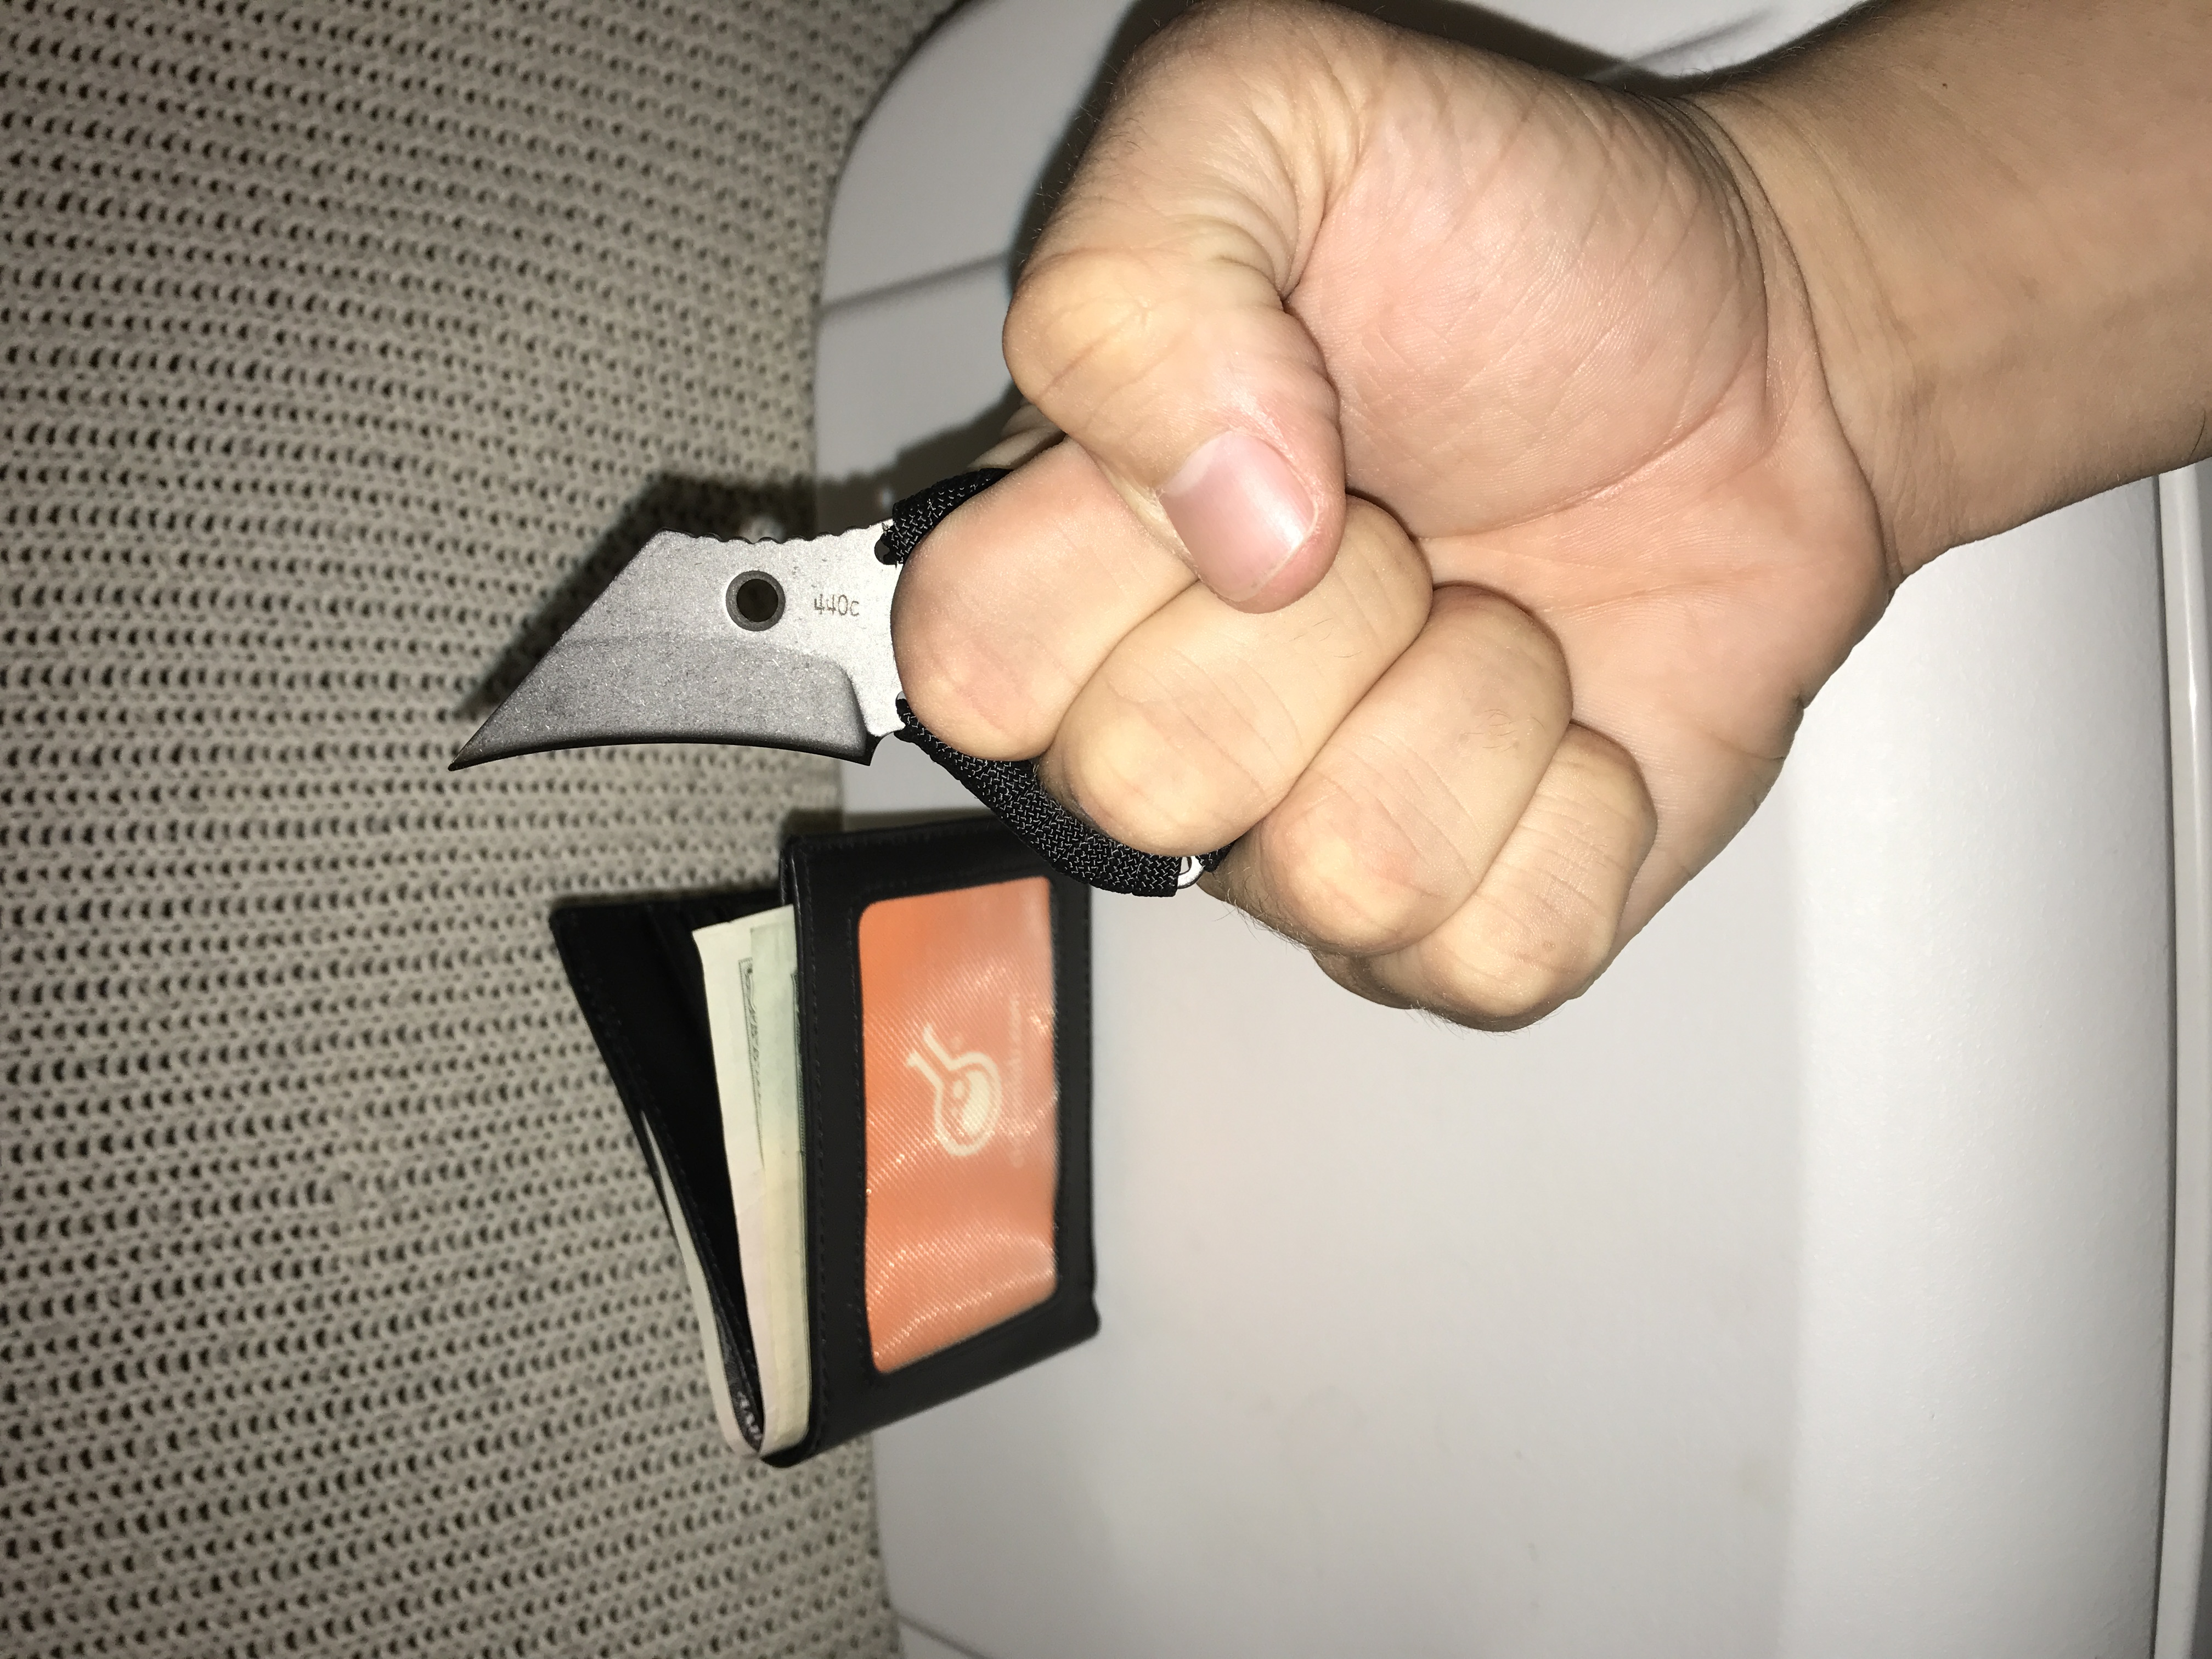 Concealable Tiger Claw with Wallet Sheath-img_1359.jpg